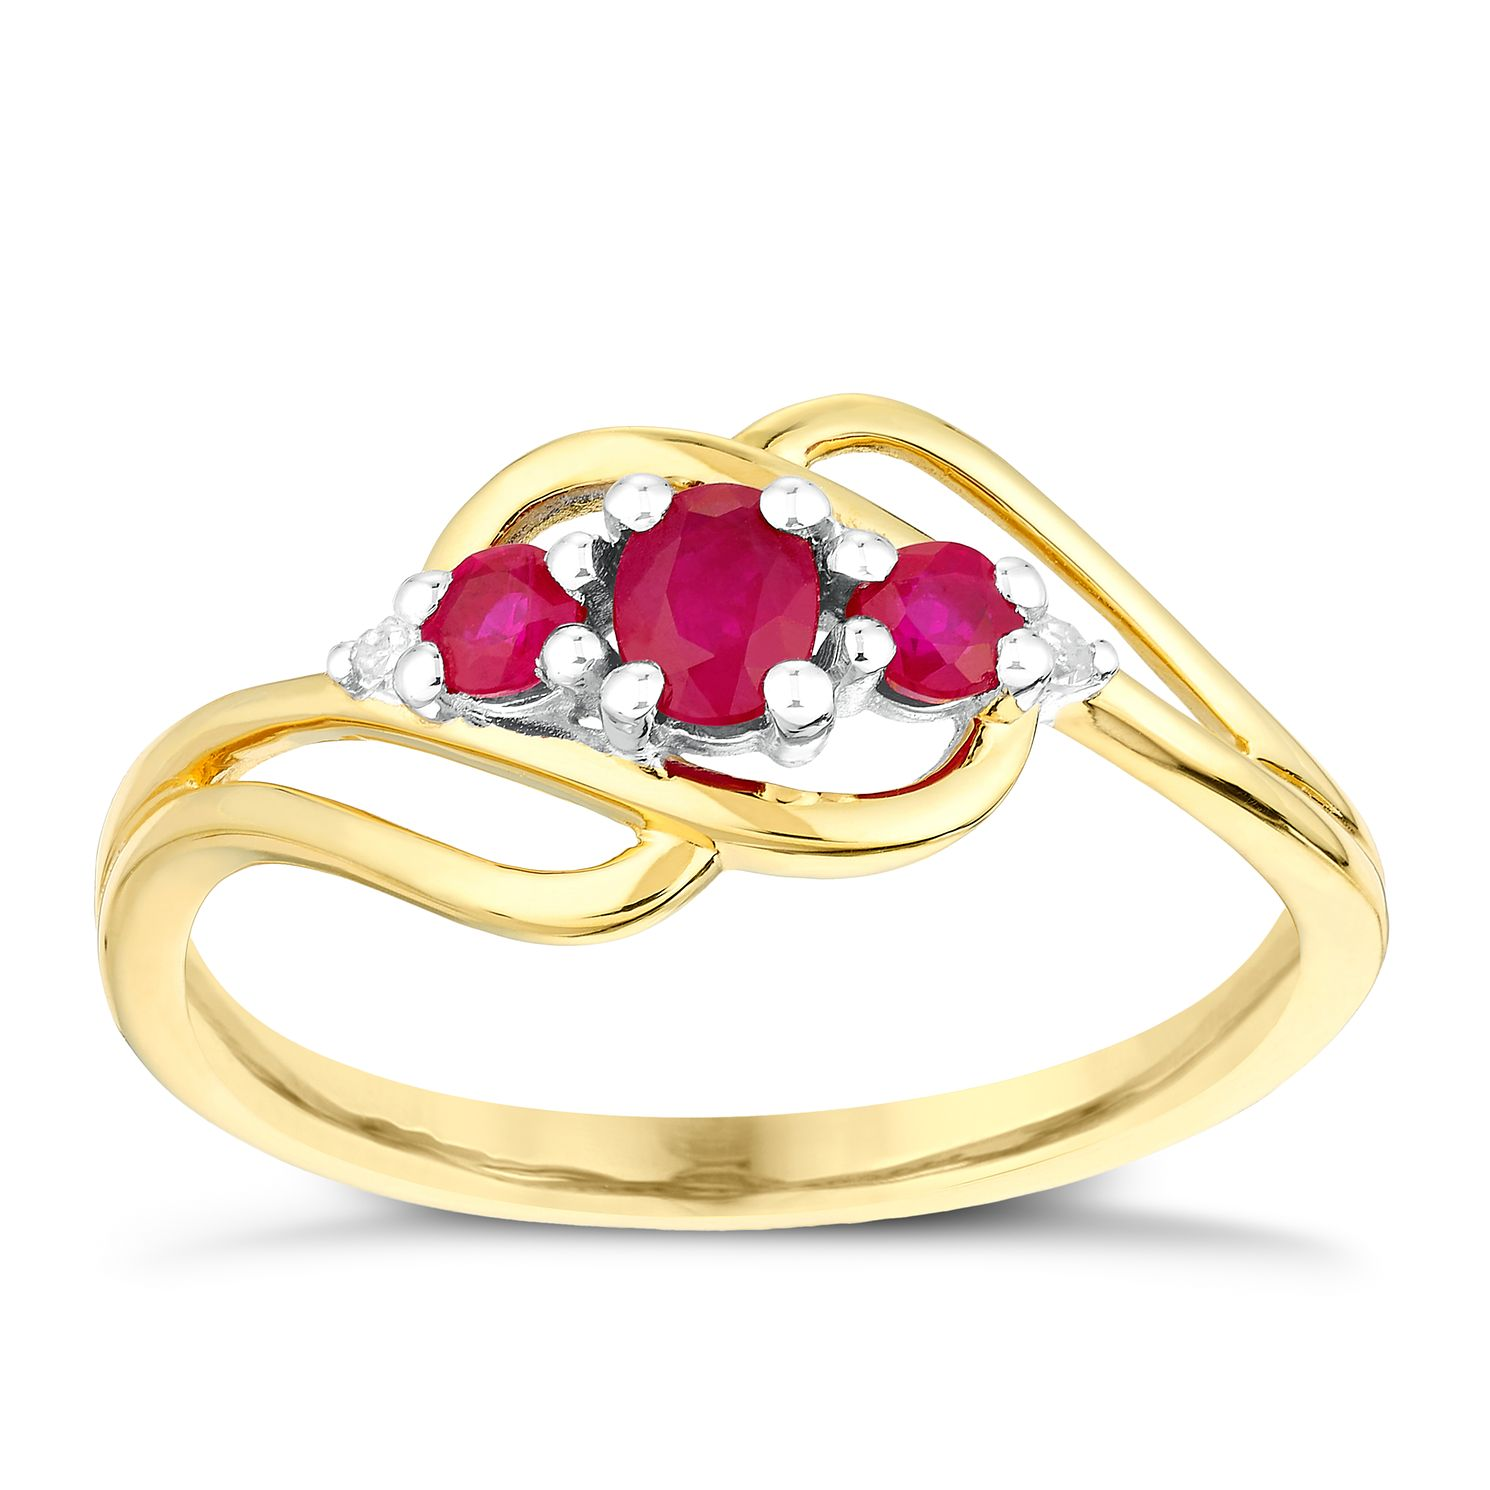 9ct Yellow Gold Three Stone Ruby & Diamond Ring - Product number 3003264